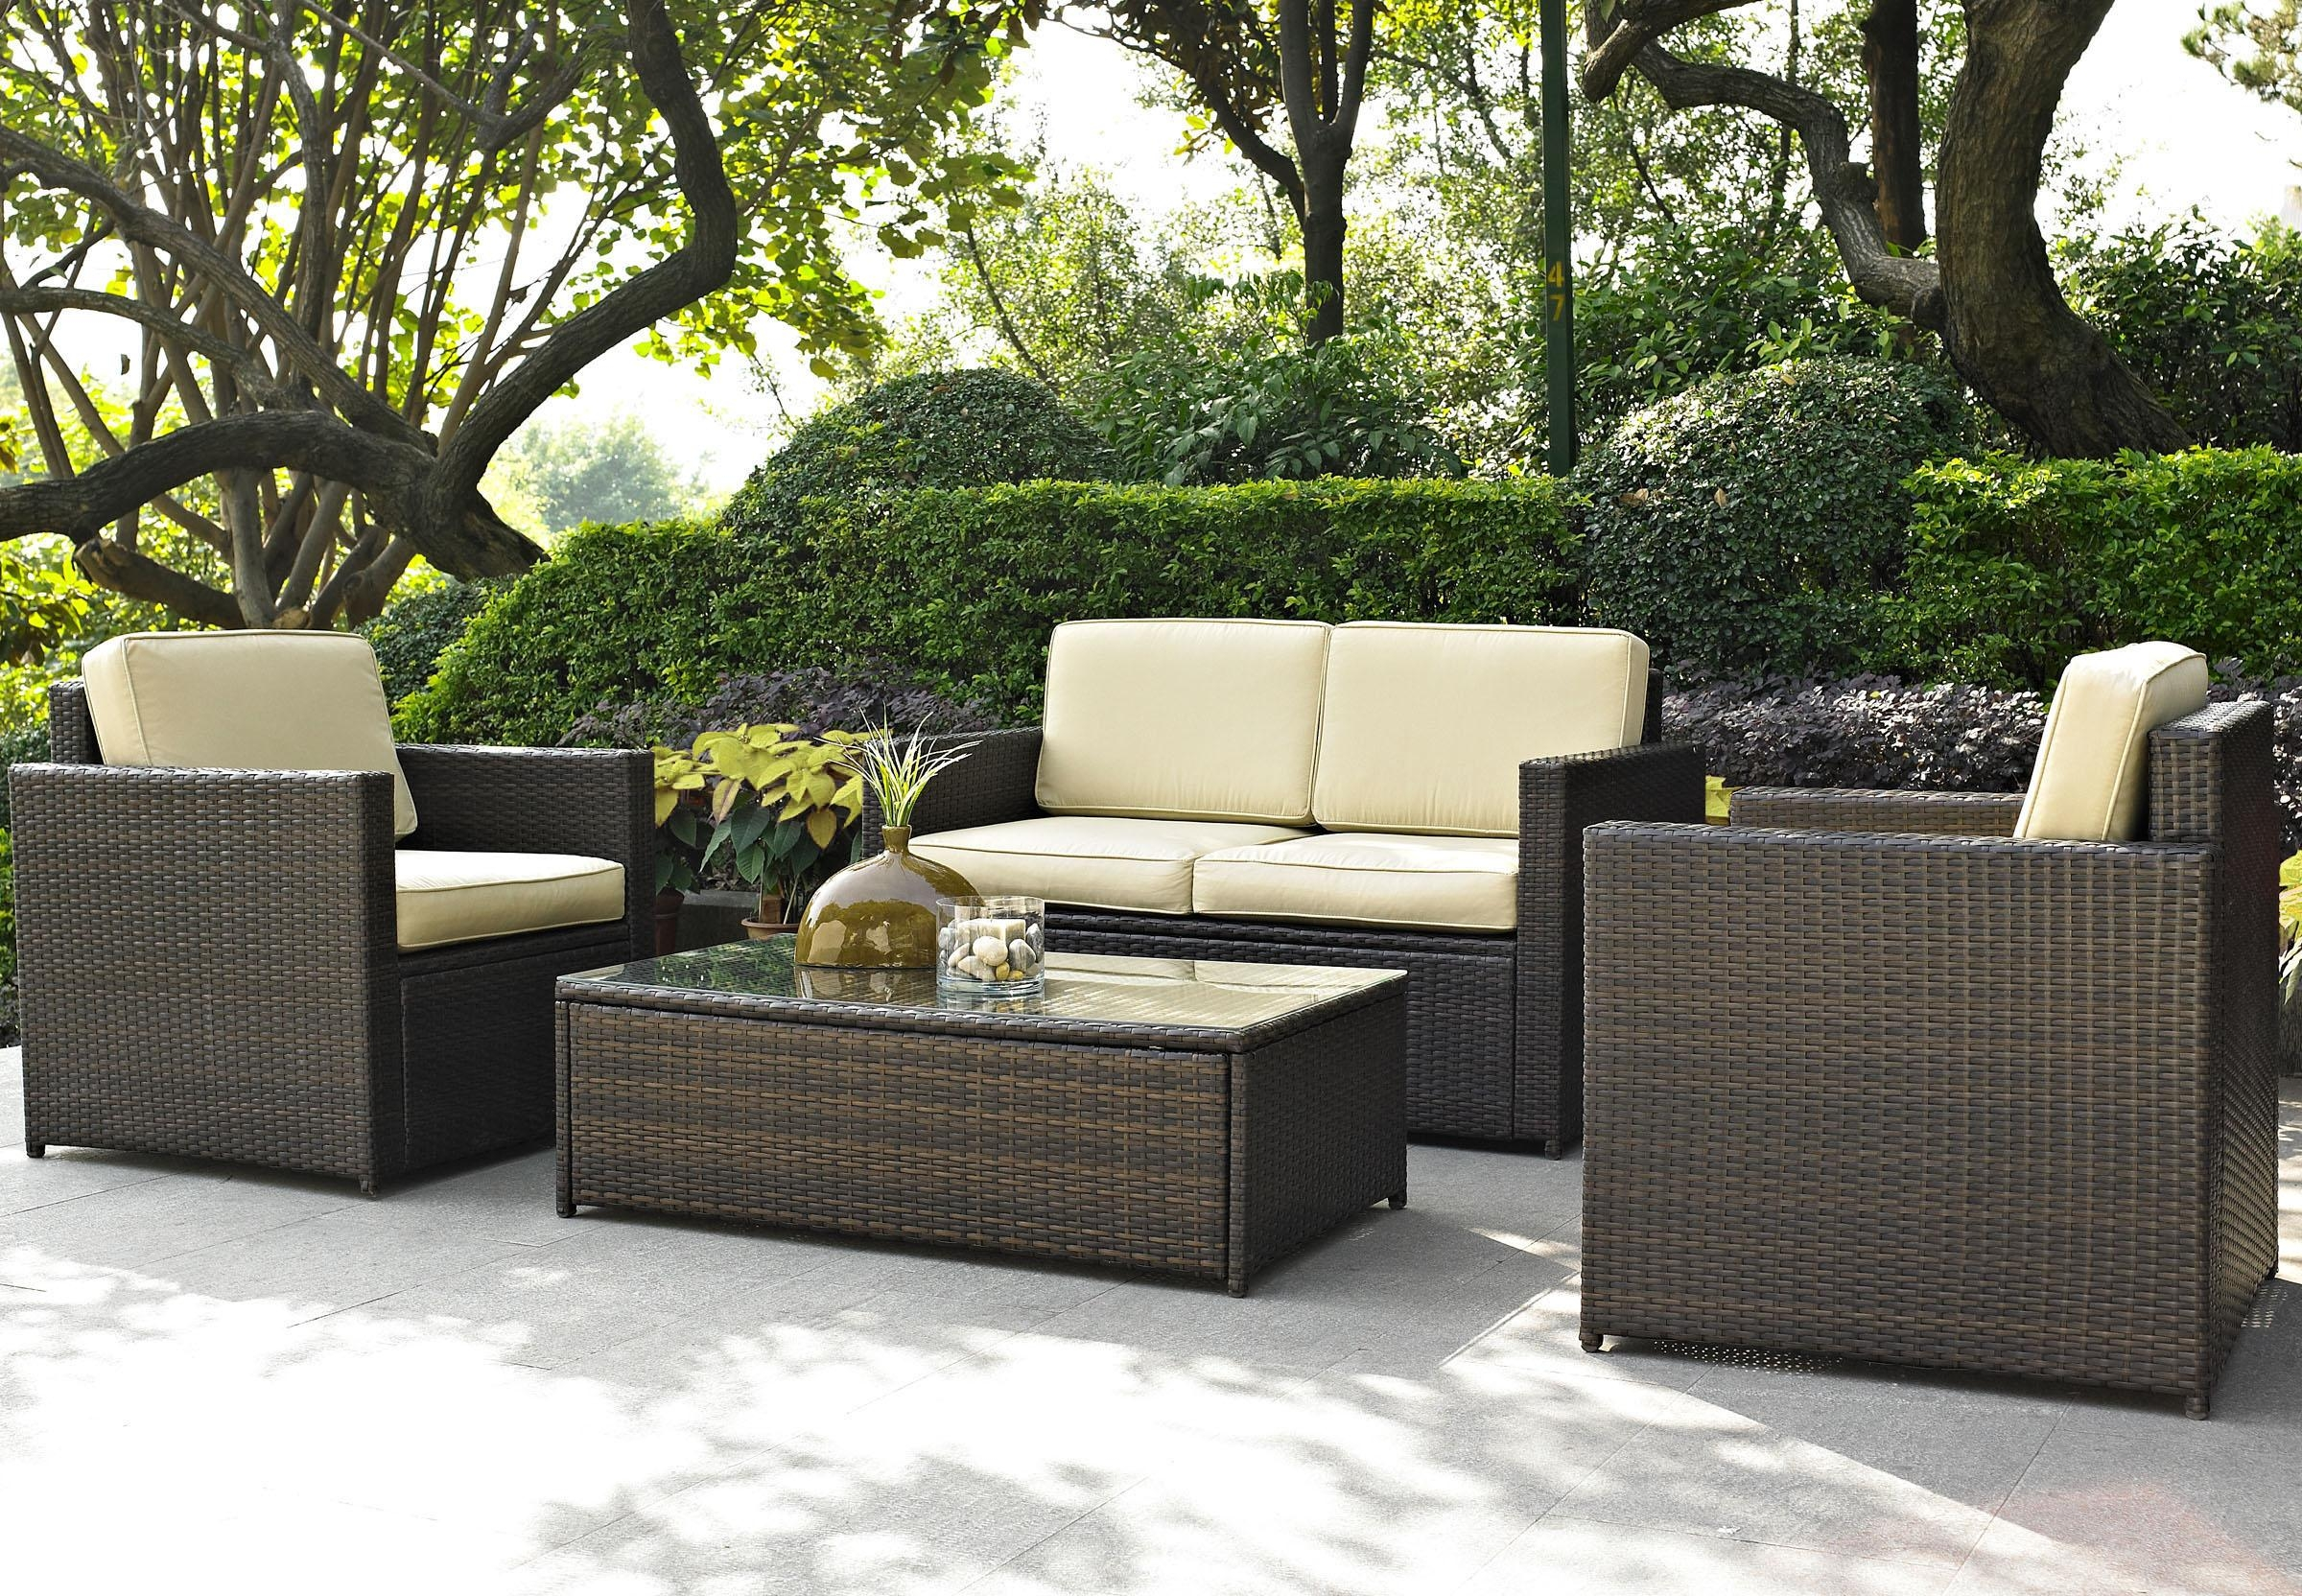 Furniture Comfortable Outdoor Furniture Design With Cozy Walmart With Regard To Outdoor Sofas And Chairs (Image 6 of 15)